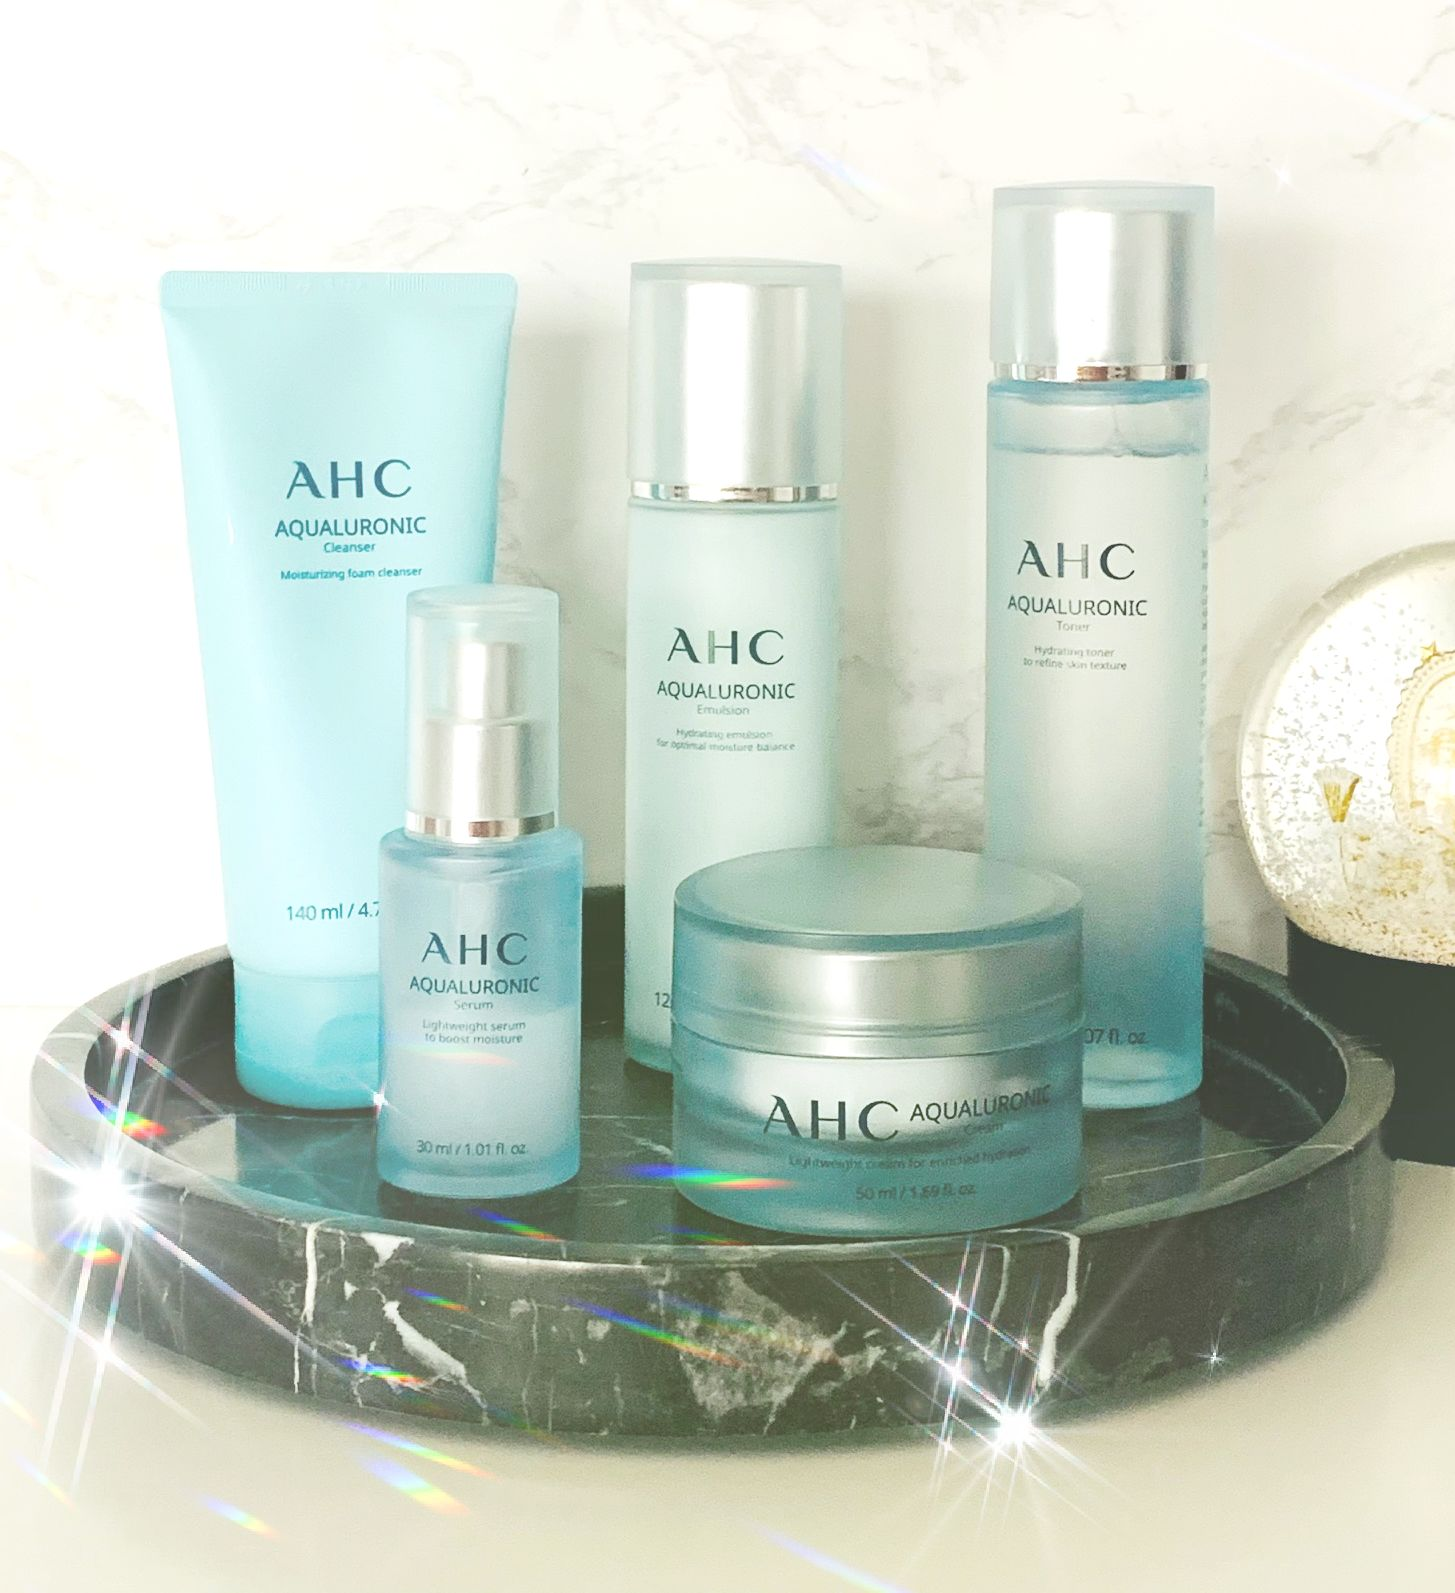 REVIEW: AHC The Aqualuronic Collection